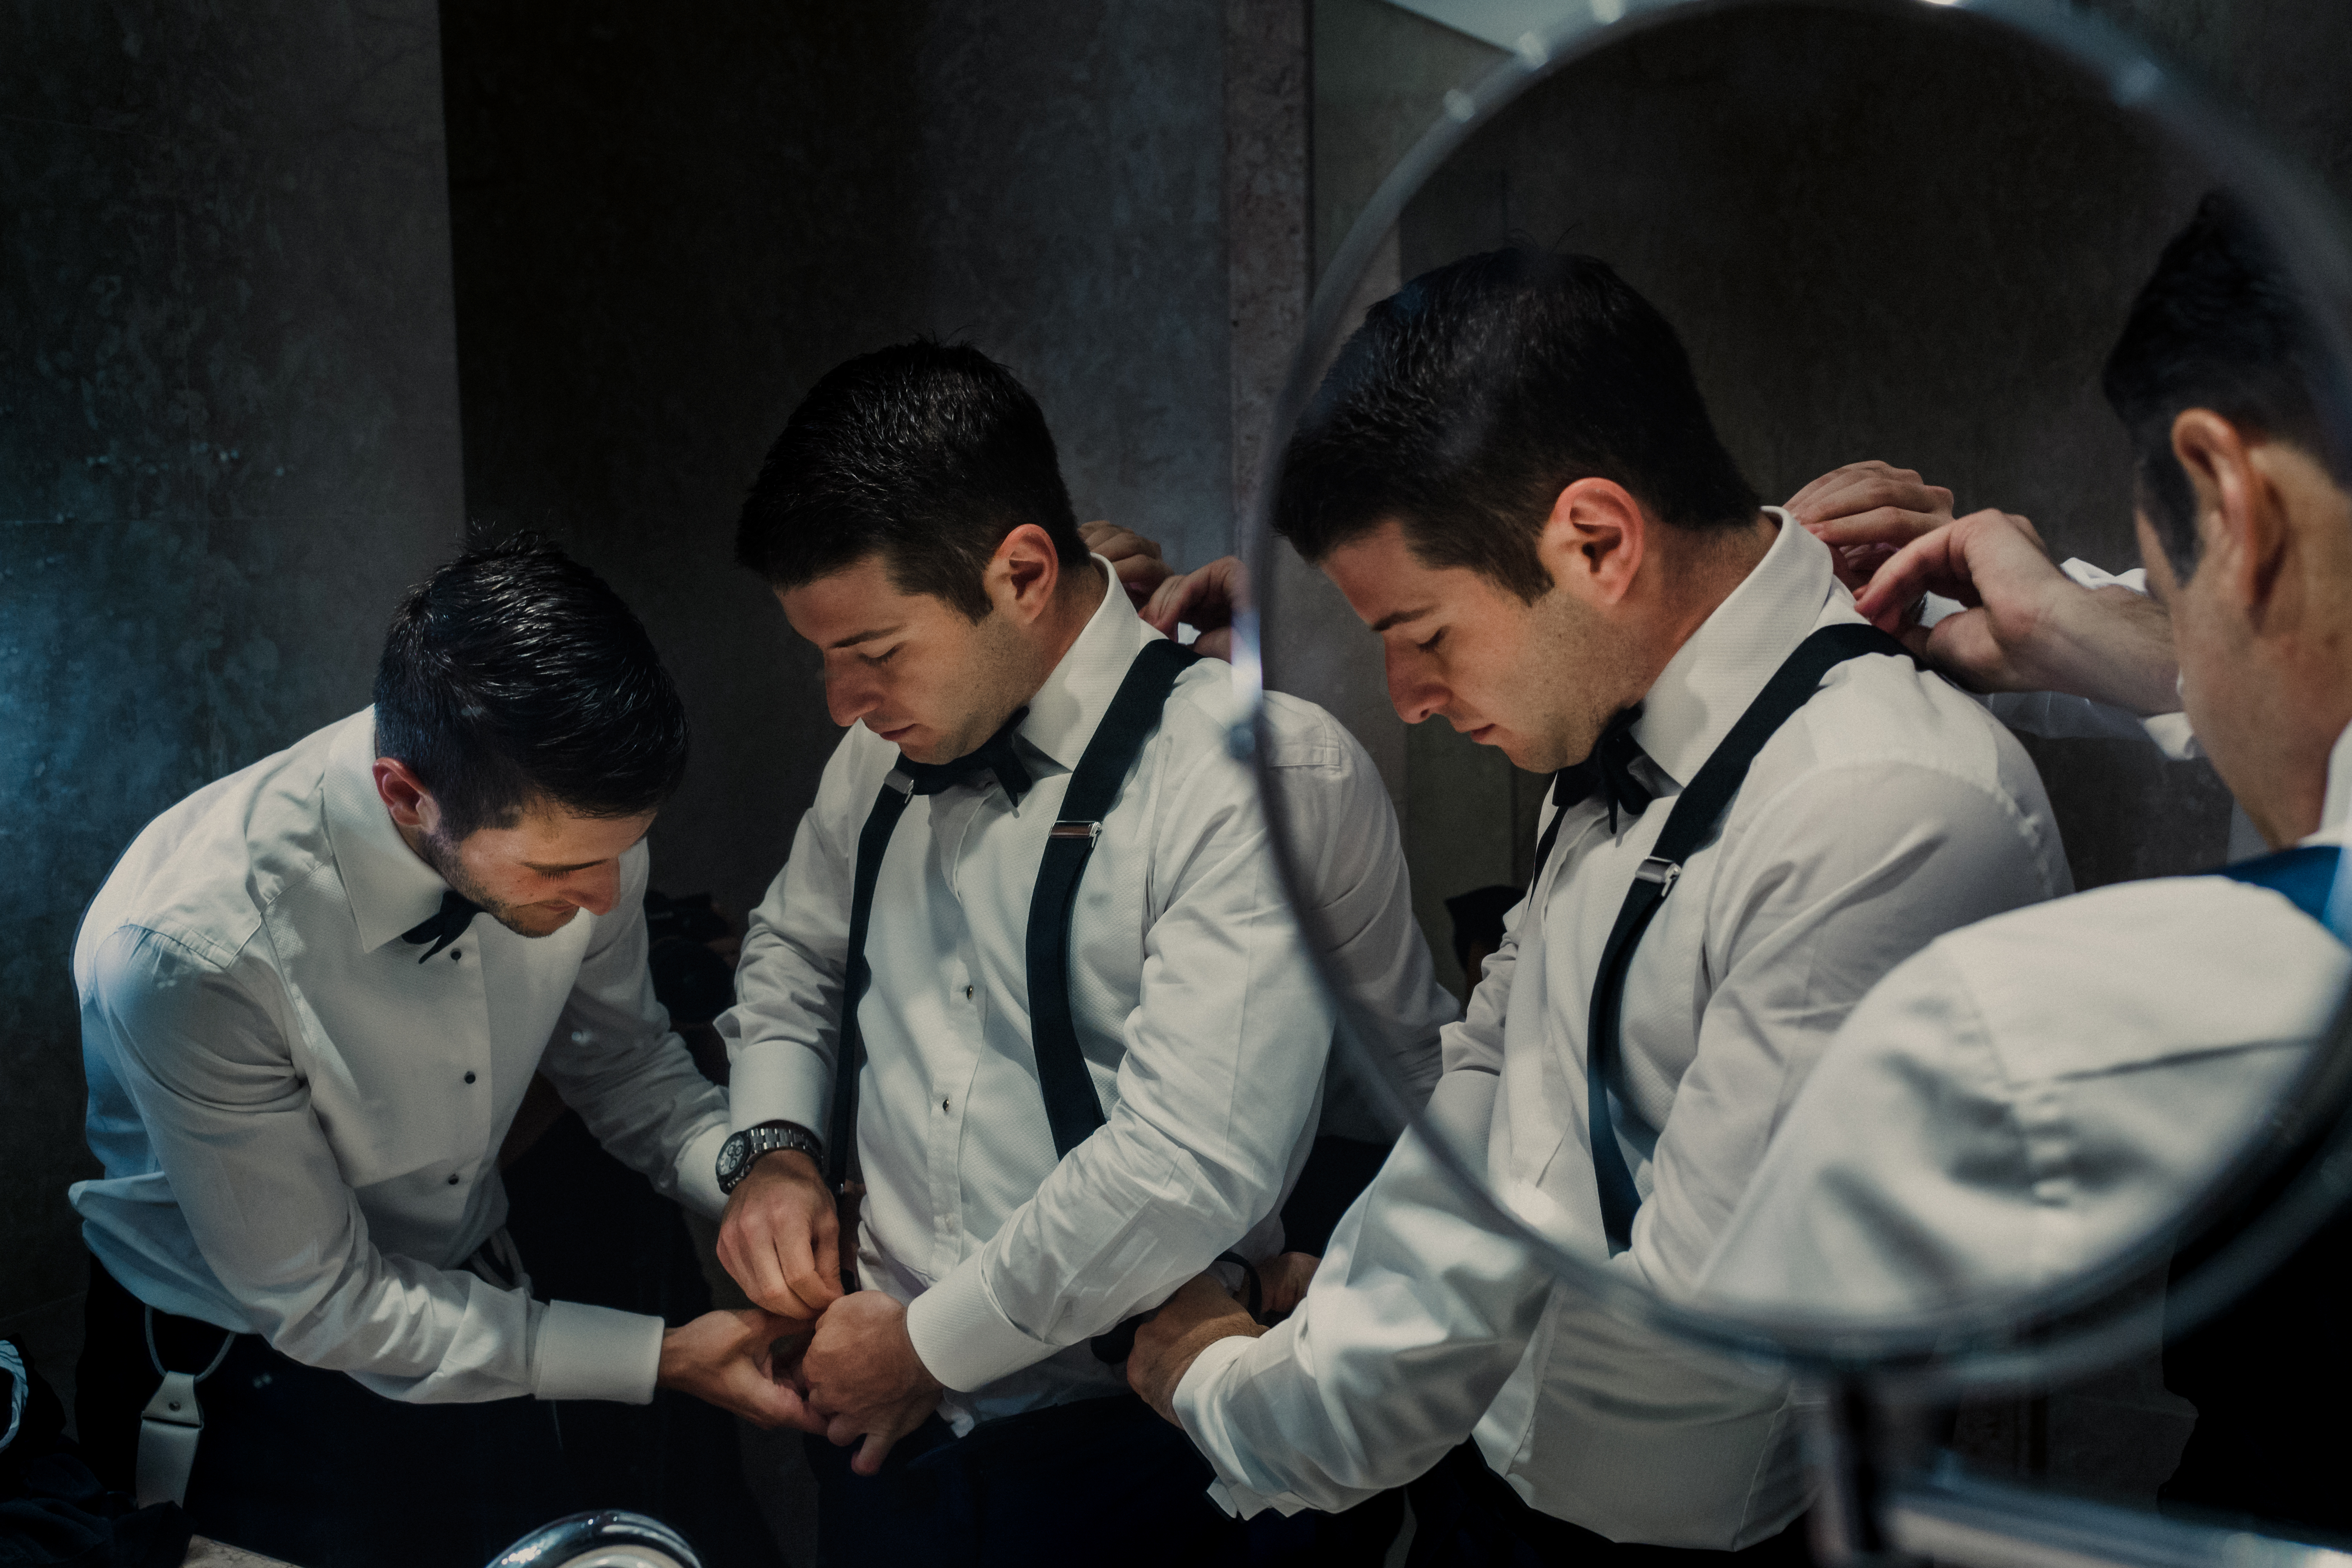 Groom getting ready, reflected in multiple mirrors - photo by El Marco Rojo - Spain